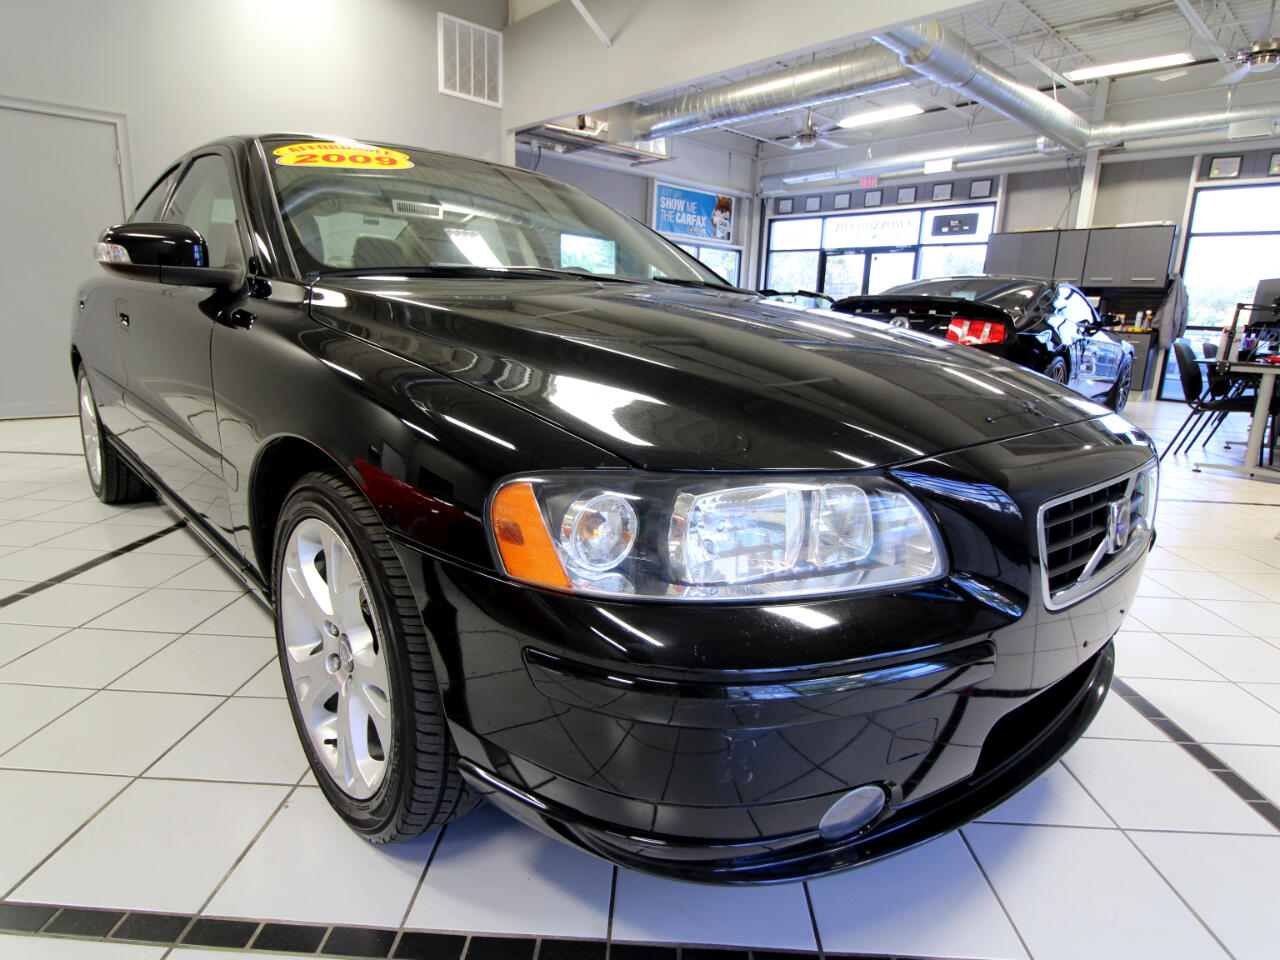 Volvo S60 4dr Sdn 2.5T FWD 2009